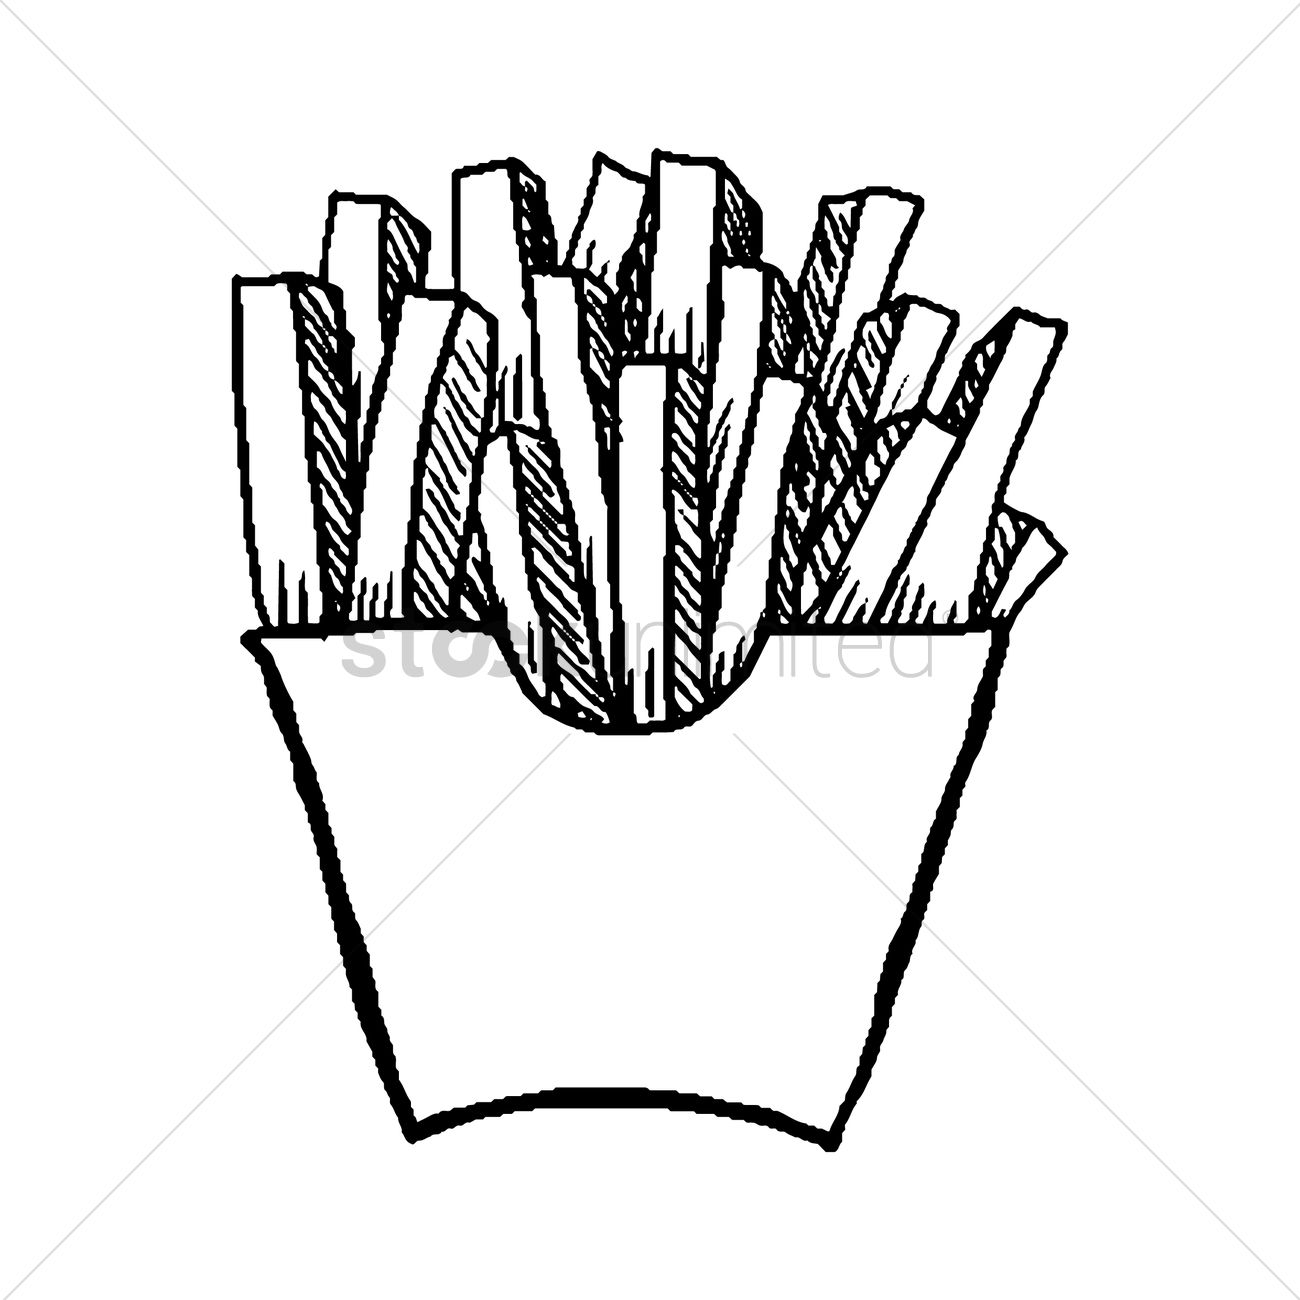 French fries Vector Image - 1869462 | StockUnlimited